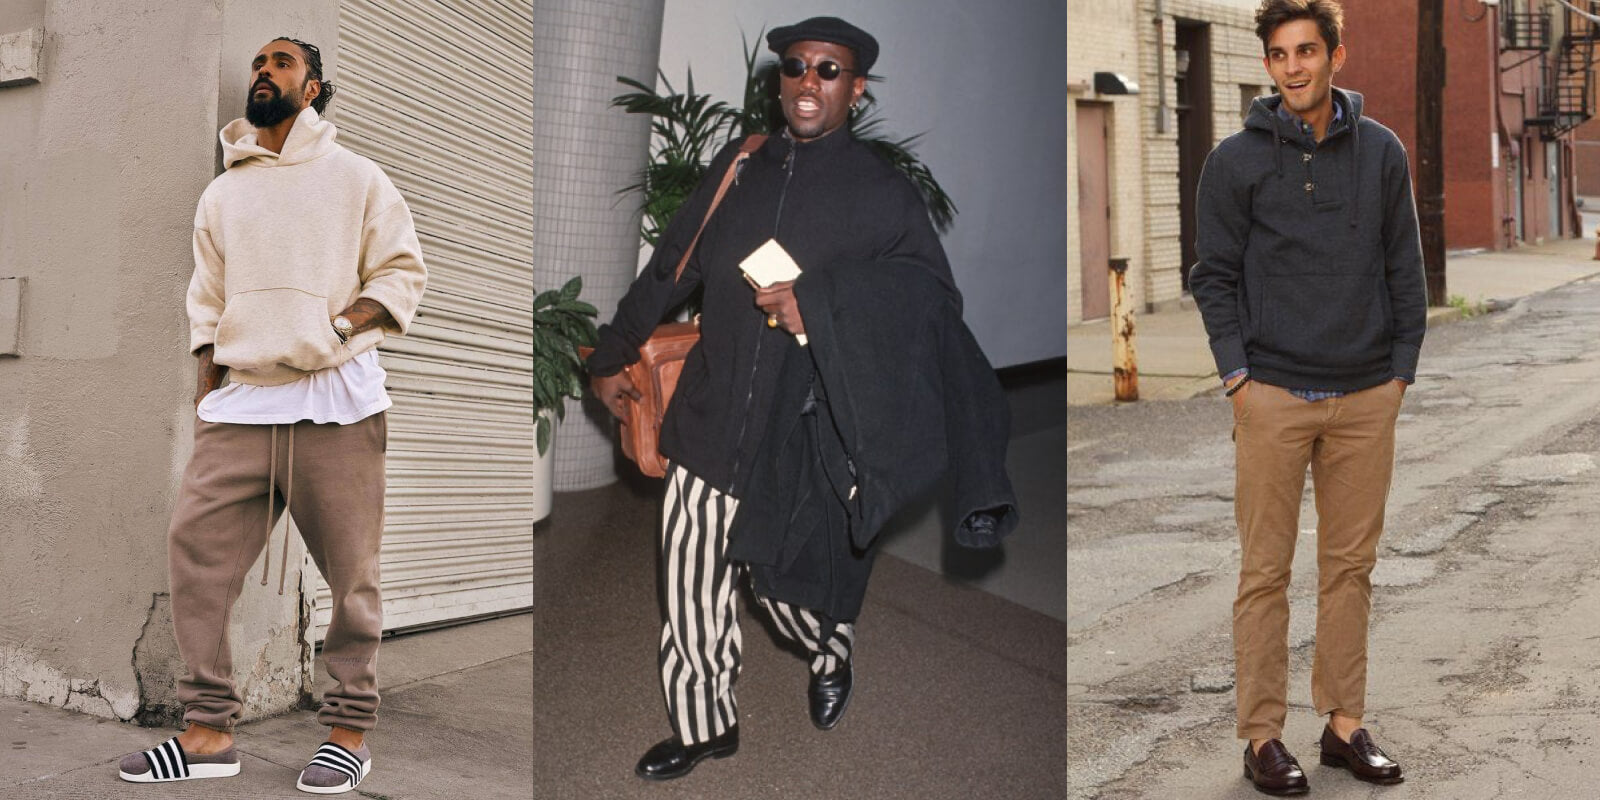 Airplane Outfits Inspiration